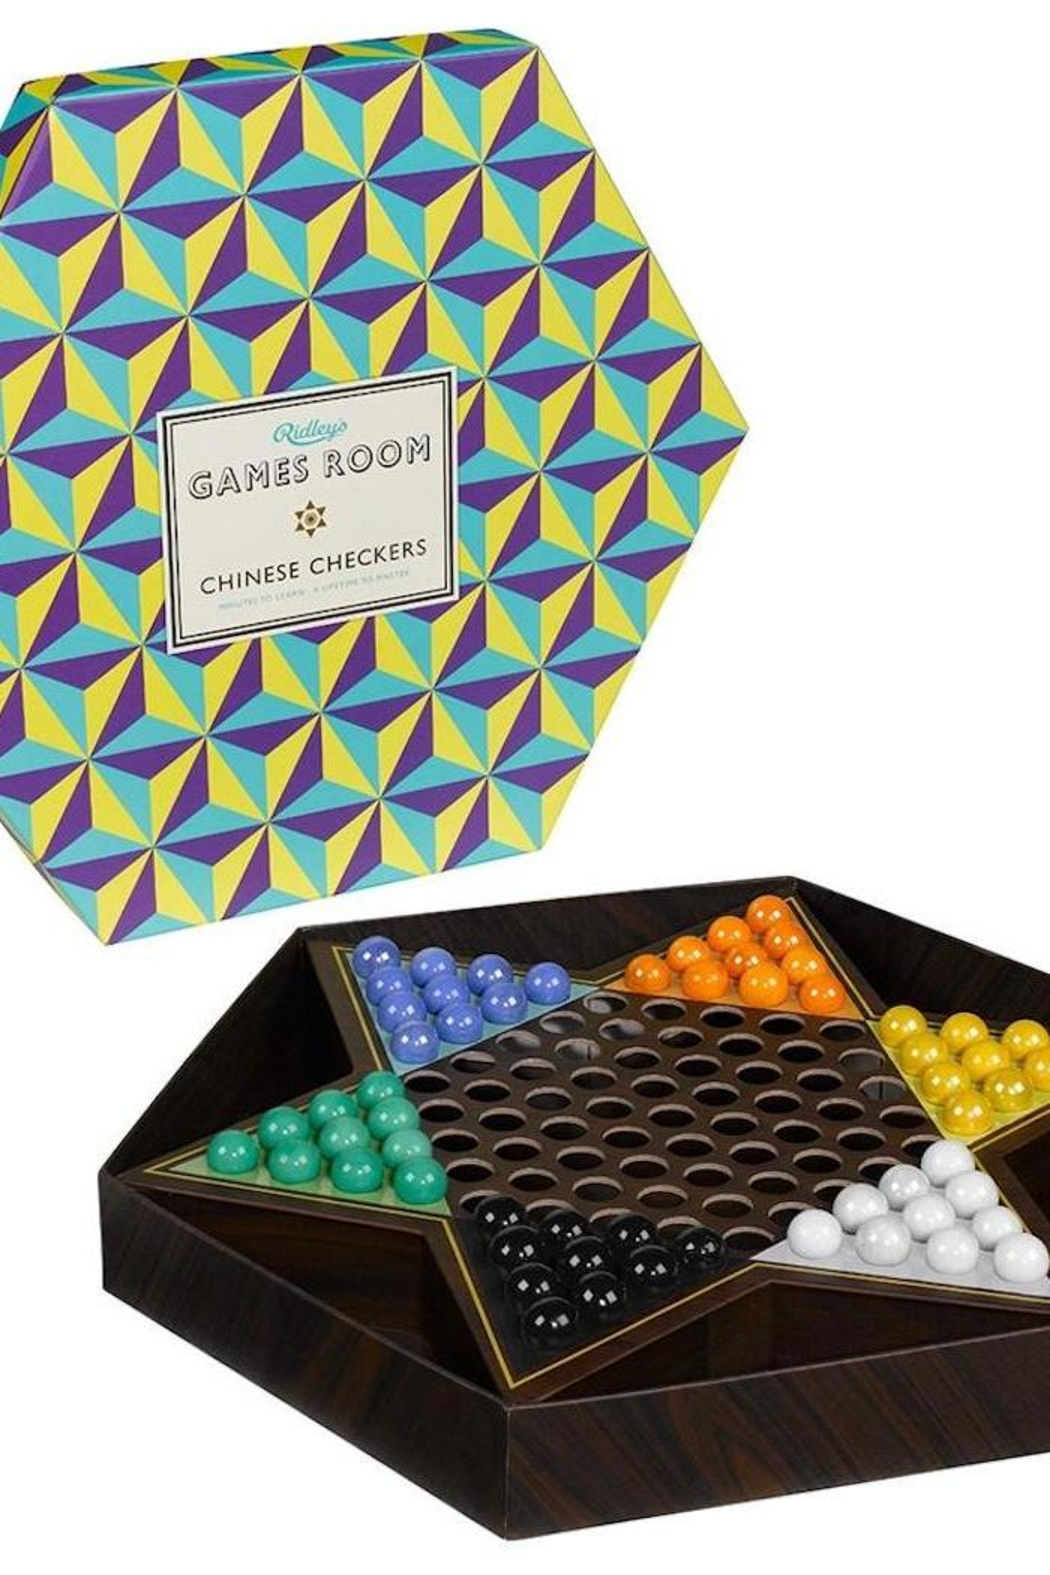 Ridley's Games Room Chinese Checkers - Main Image